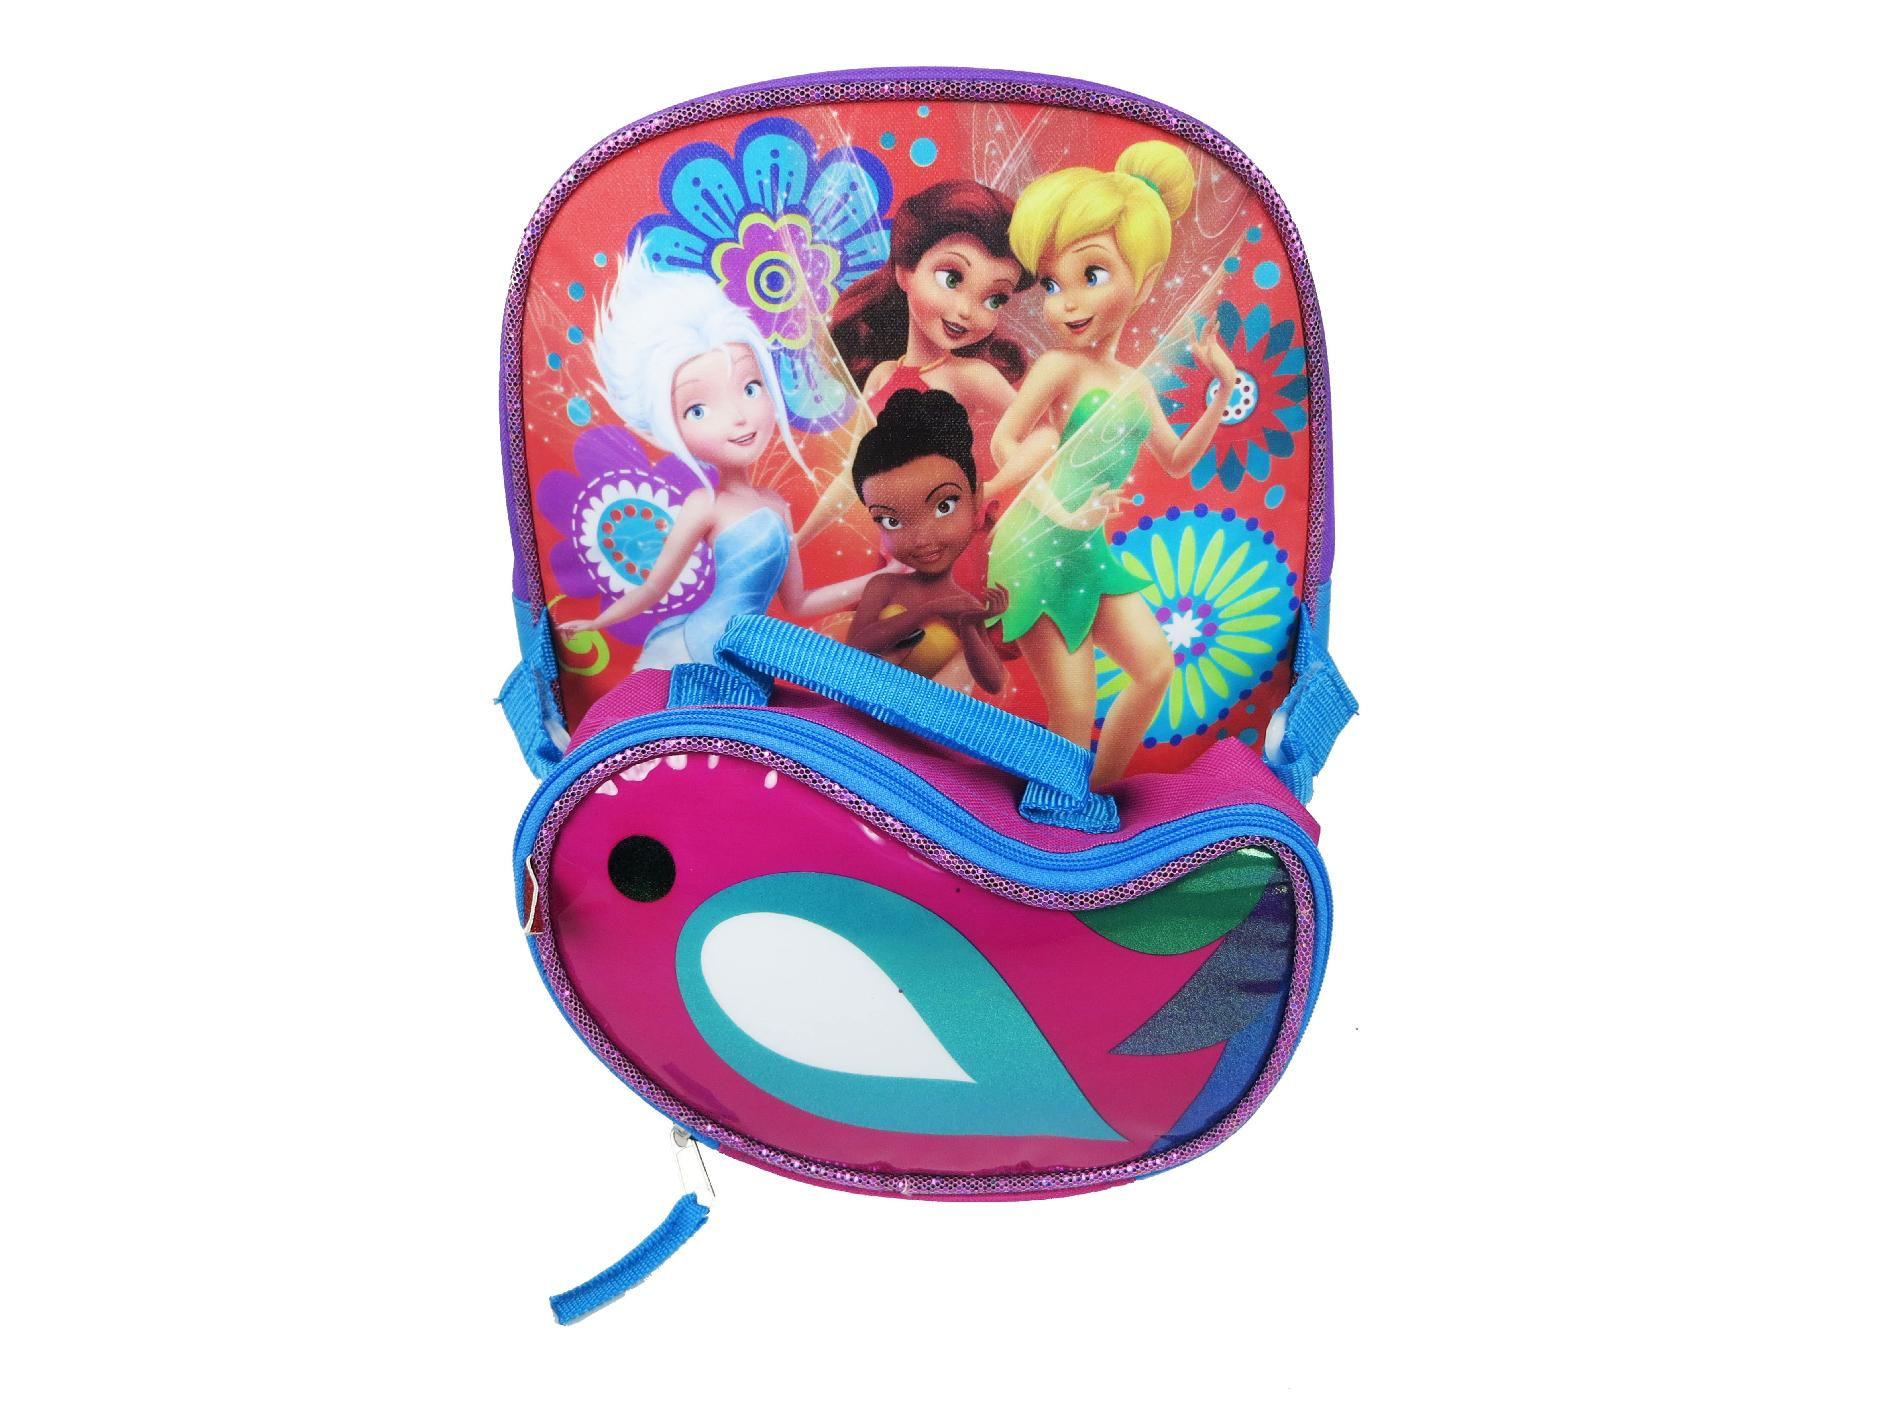 Disney Fairies Toddler Backpack with Detachable Handbag - 12